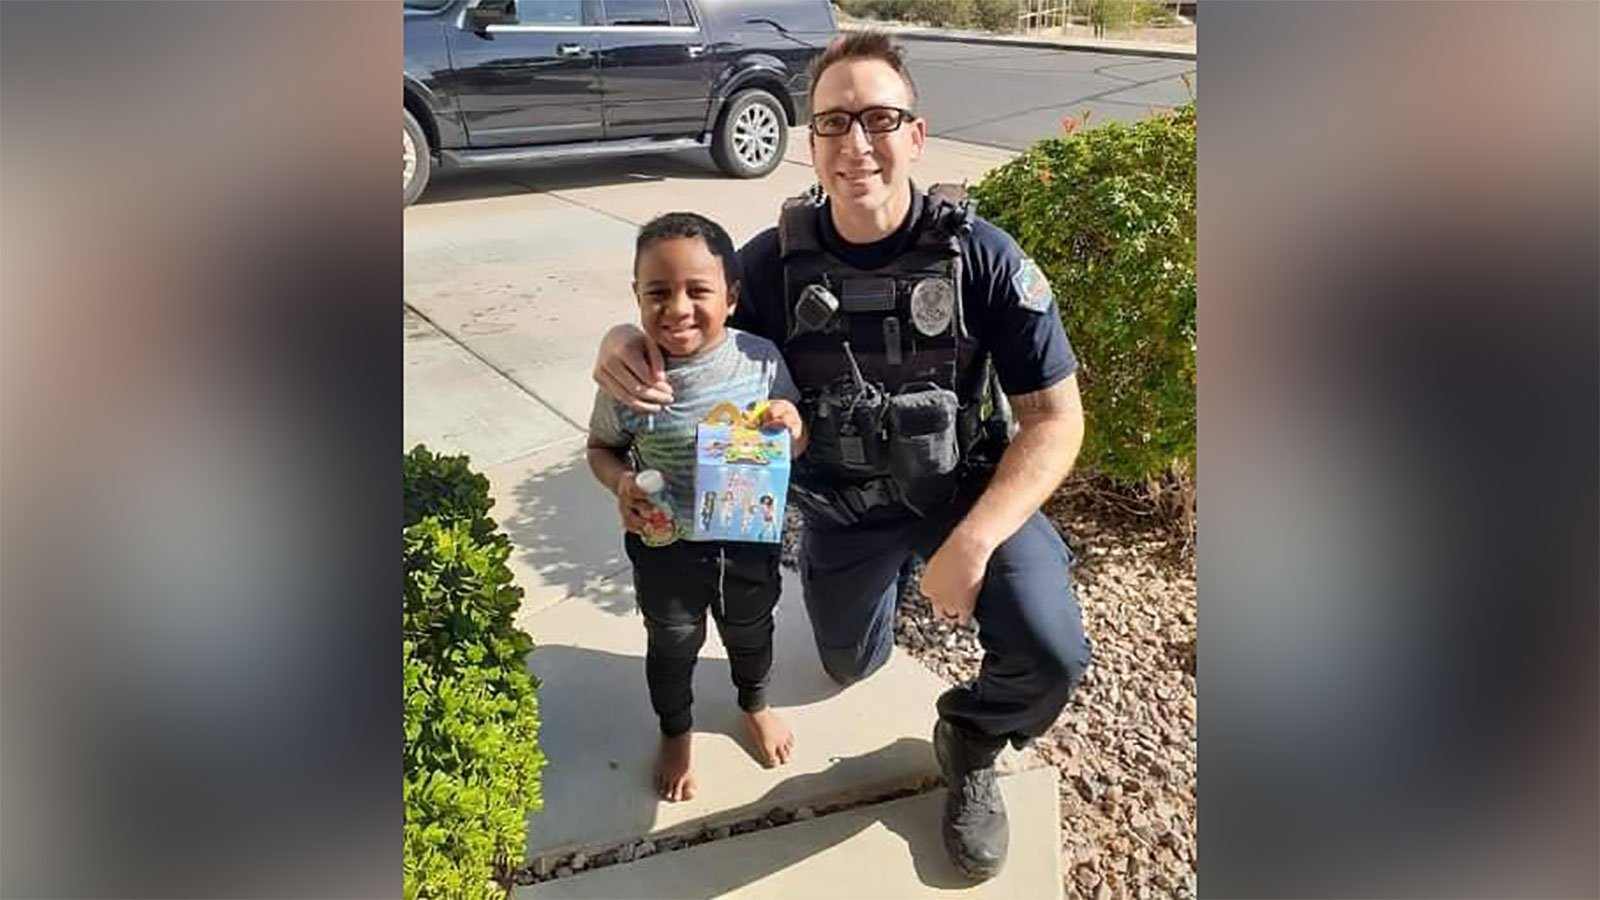 A 5-year-old boy wanted a McDonald's Happy Meal. So a police officer delivered it